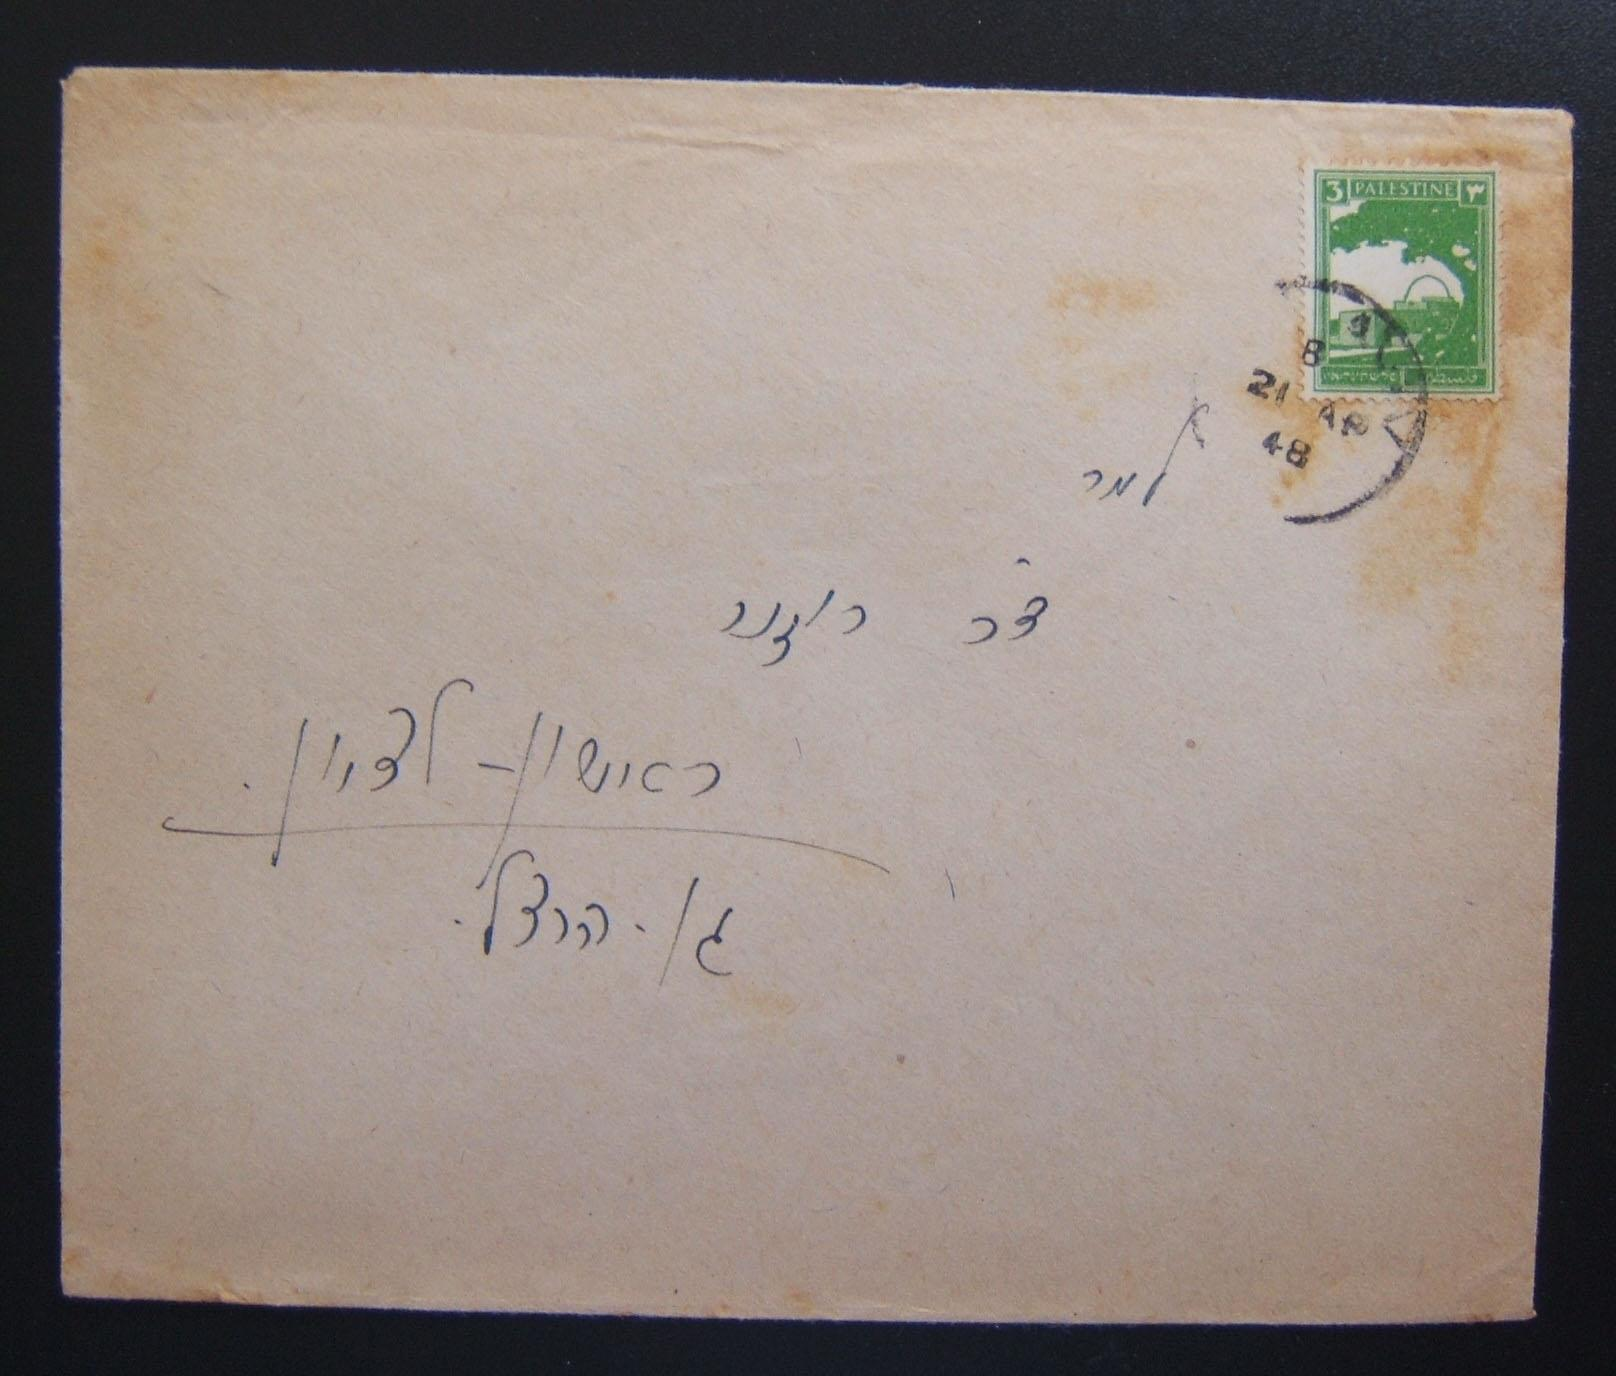 Late domestic Mandate mail: commercial cover ex TLV to RLZ franked 3m printed matter rate and postmarked 21 AP 48 (pmk D44); back-flap left open as per PM rate regulations. Mailed